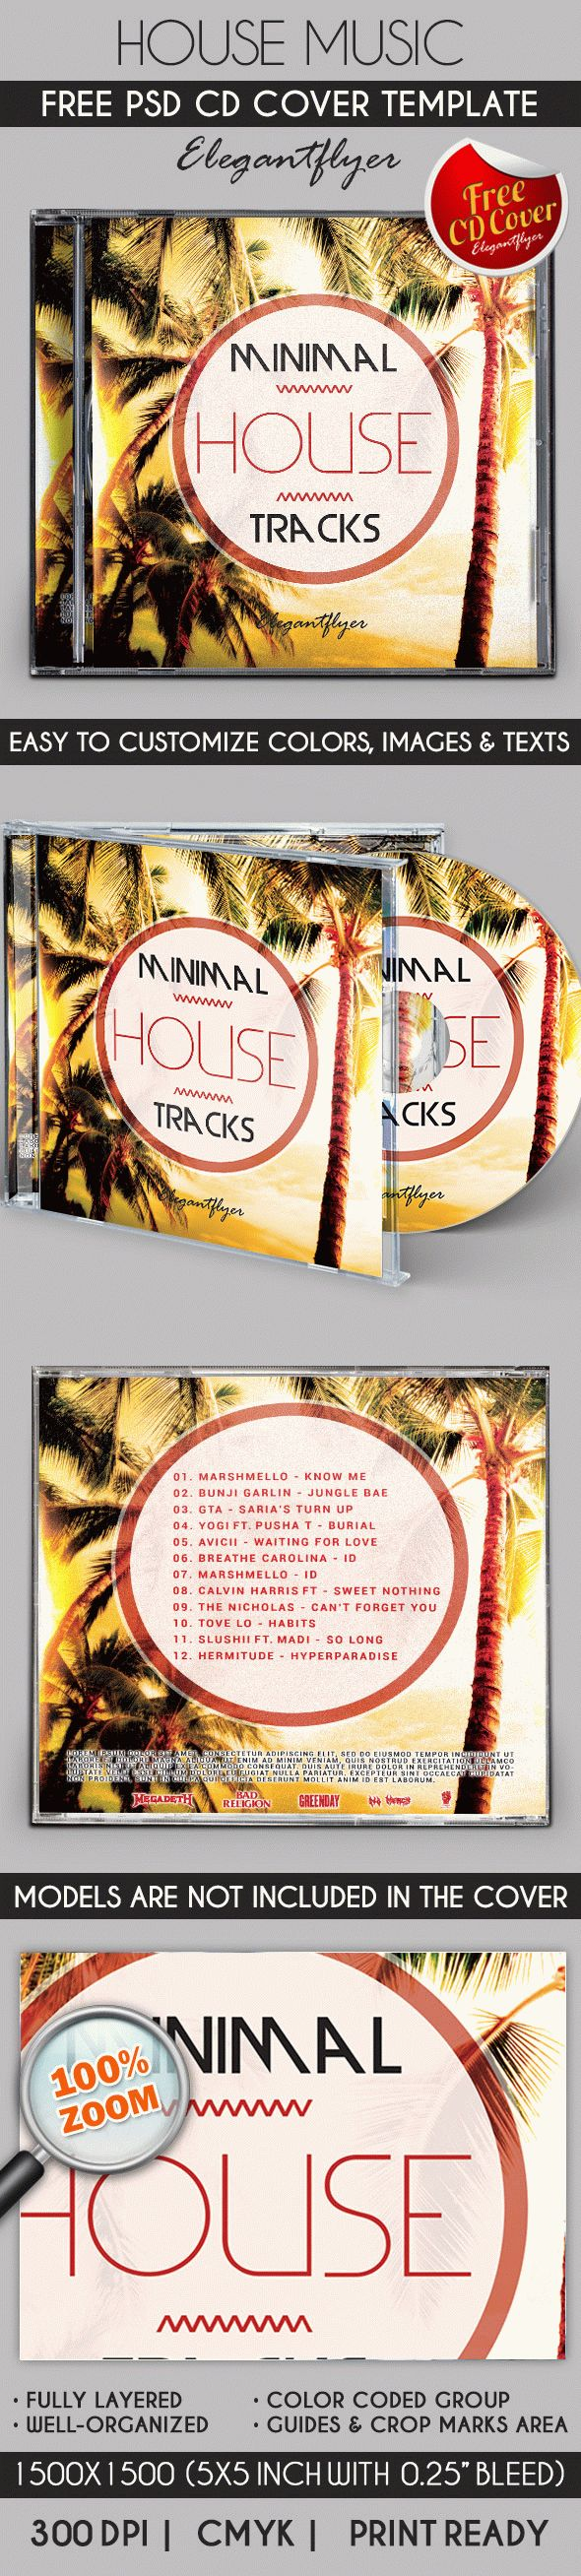 House Music – Free CD Cover PSD Template